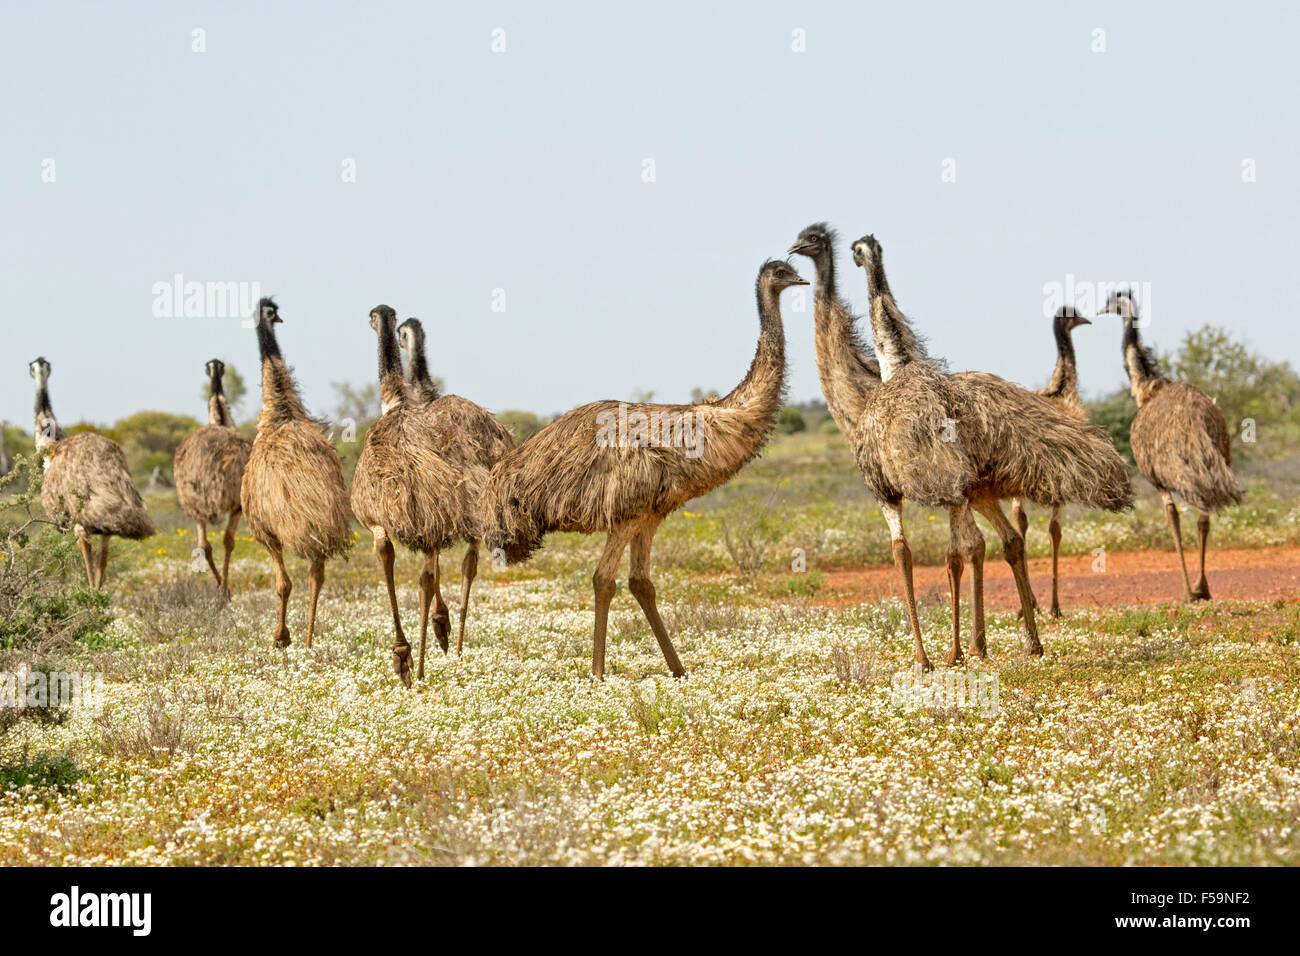 Flock of emus wandering across landscape with carpet of low white wildflowers in Flinders Ranges outback Sth Aust - Stock Image